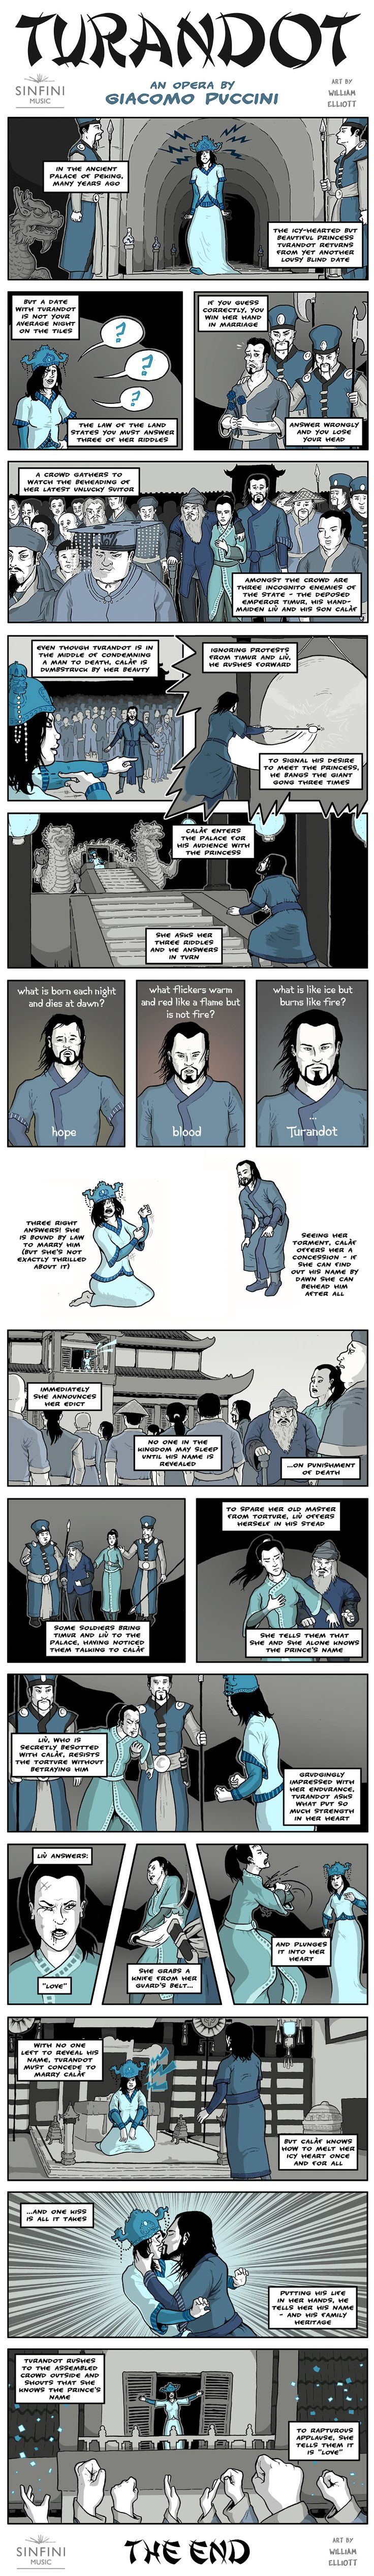 Turandot: An Opera by Giacomo Puccini. Opera Comic Strip Art by William Elliott